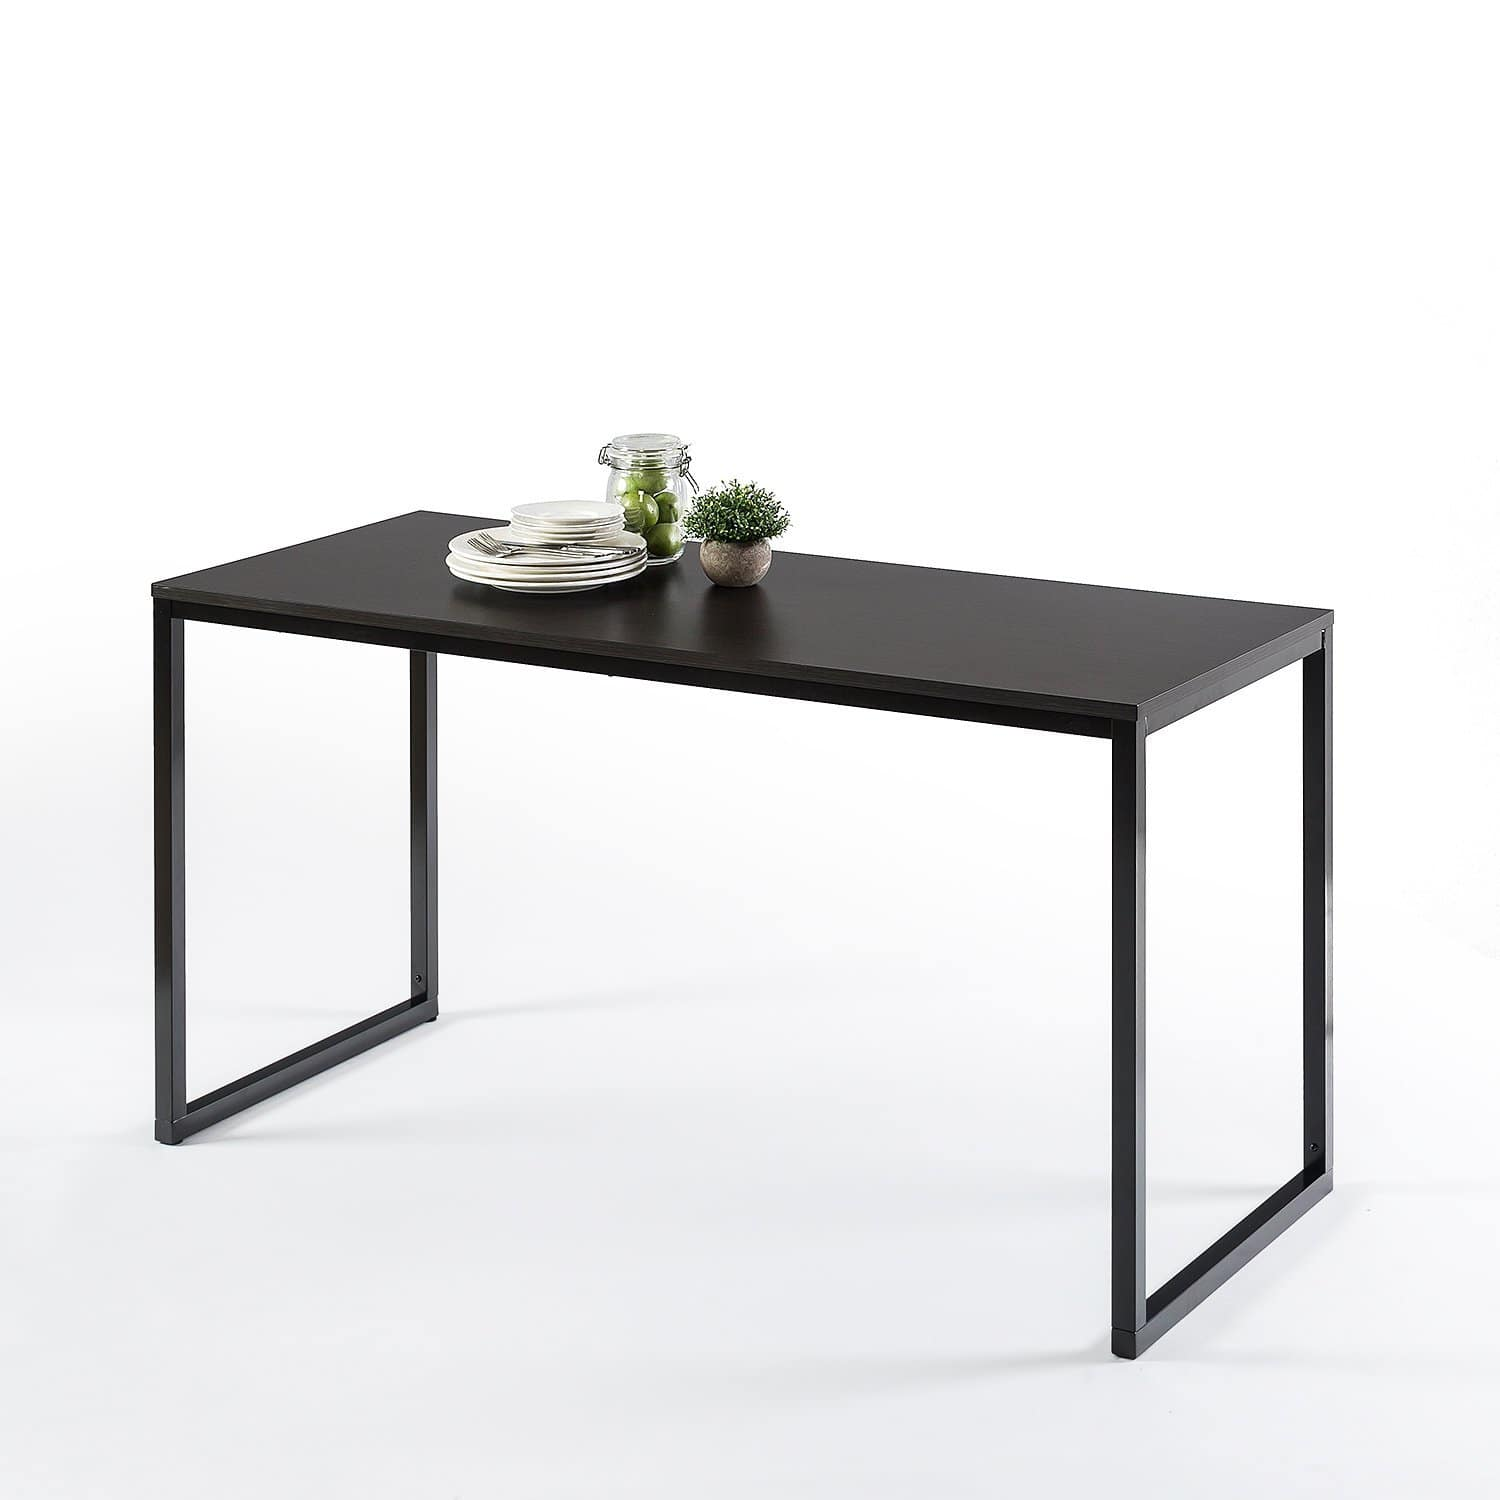 Zinus Jennifer Modern Studio Collection Soho Rectangular Dining Table / Table Only / Office Desk / Computer Table, Espresso $60